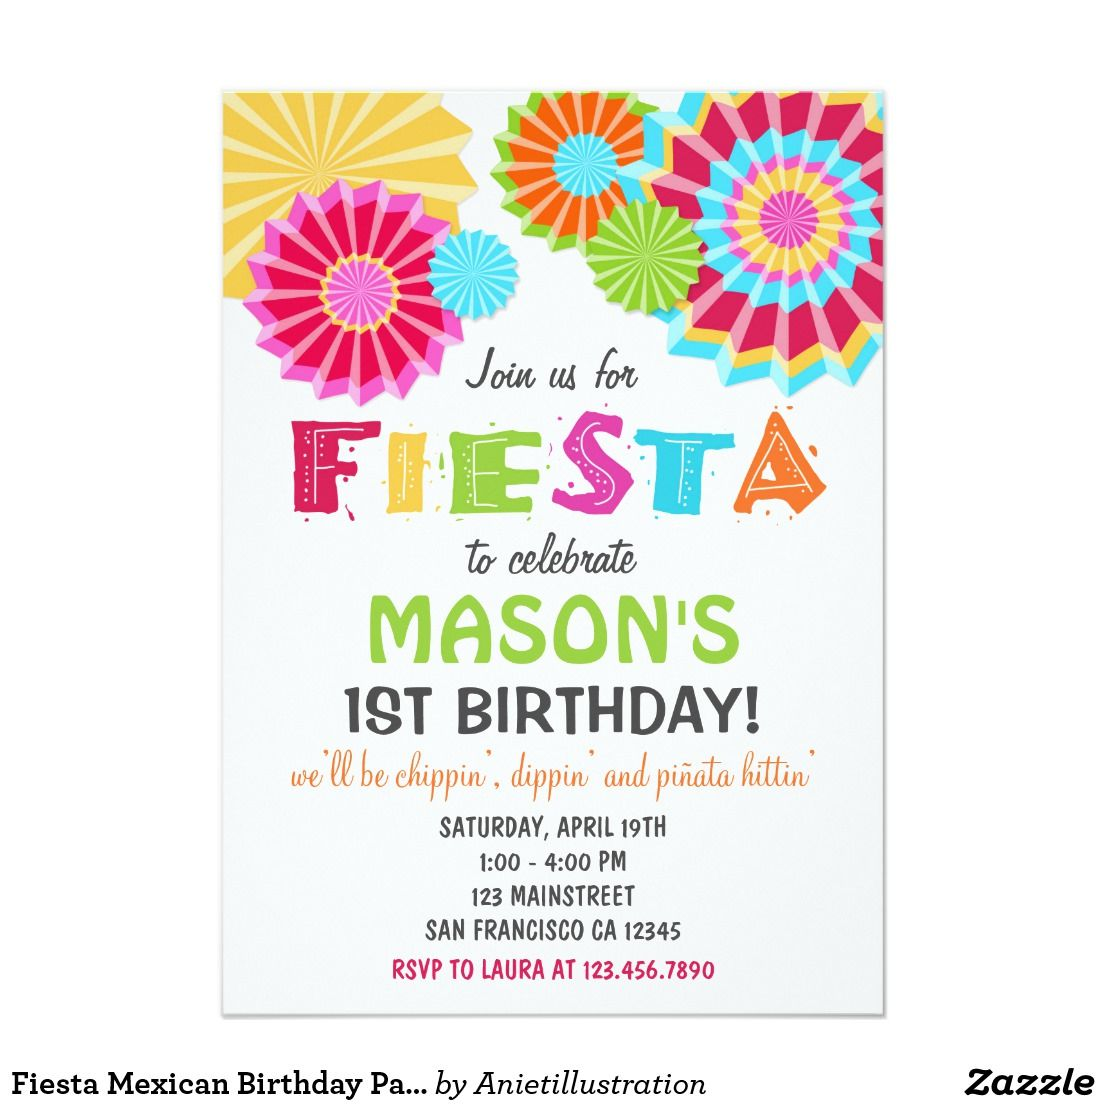 Fiesta Mexican Birthday Party Invitation   Mexican birthday parties ...